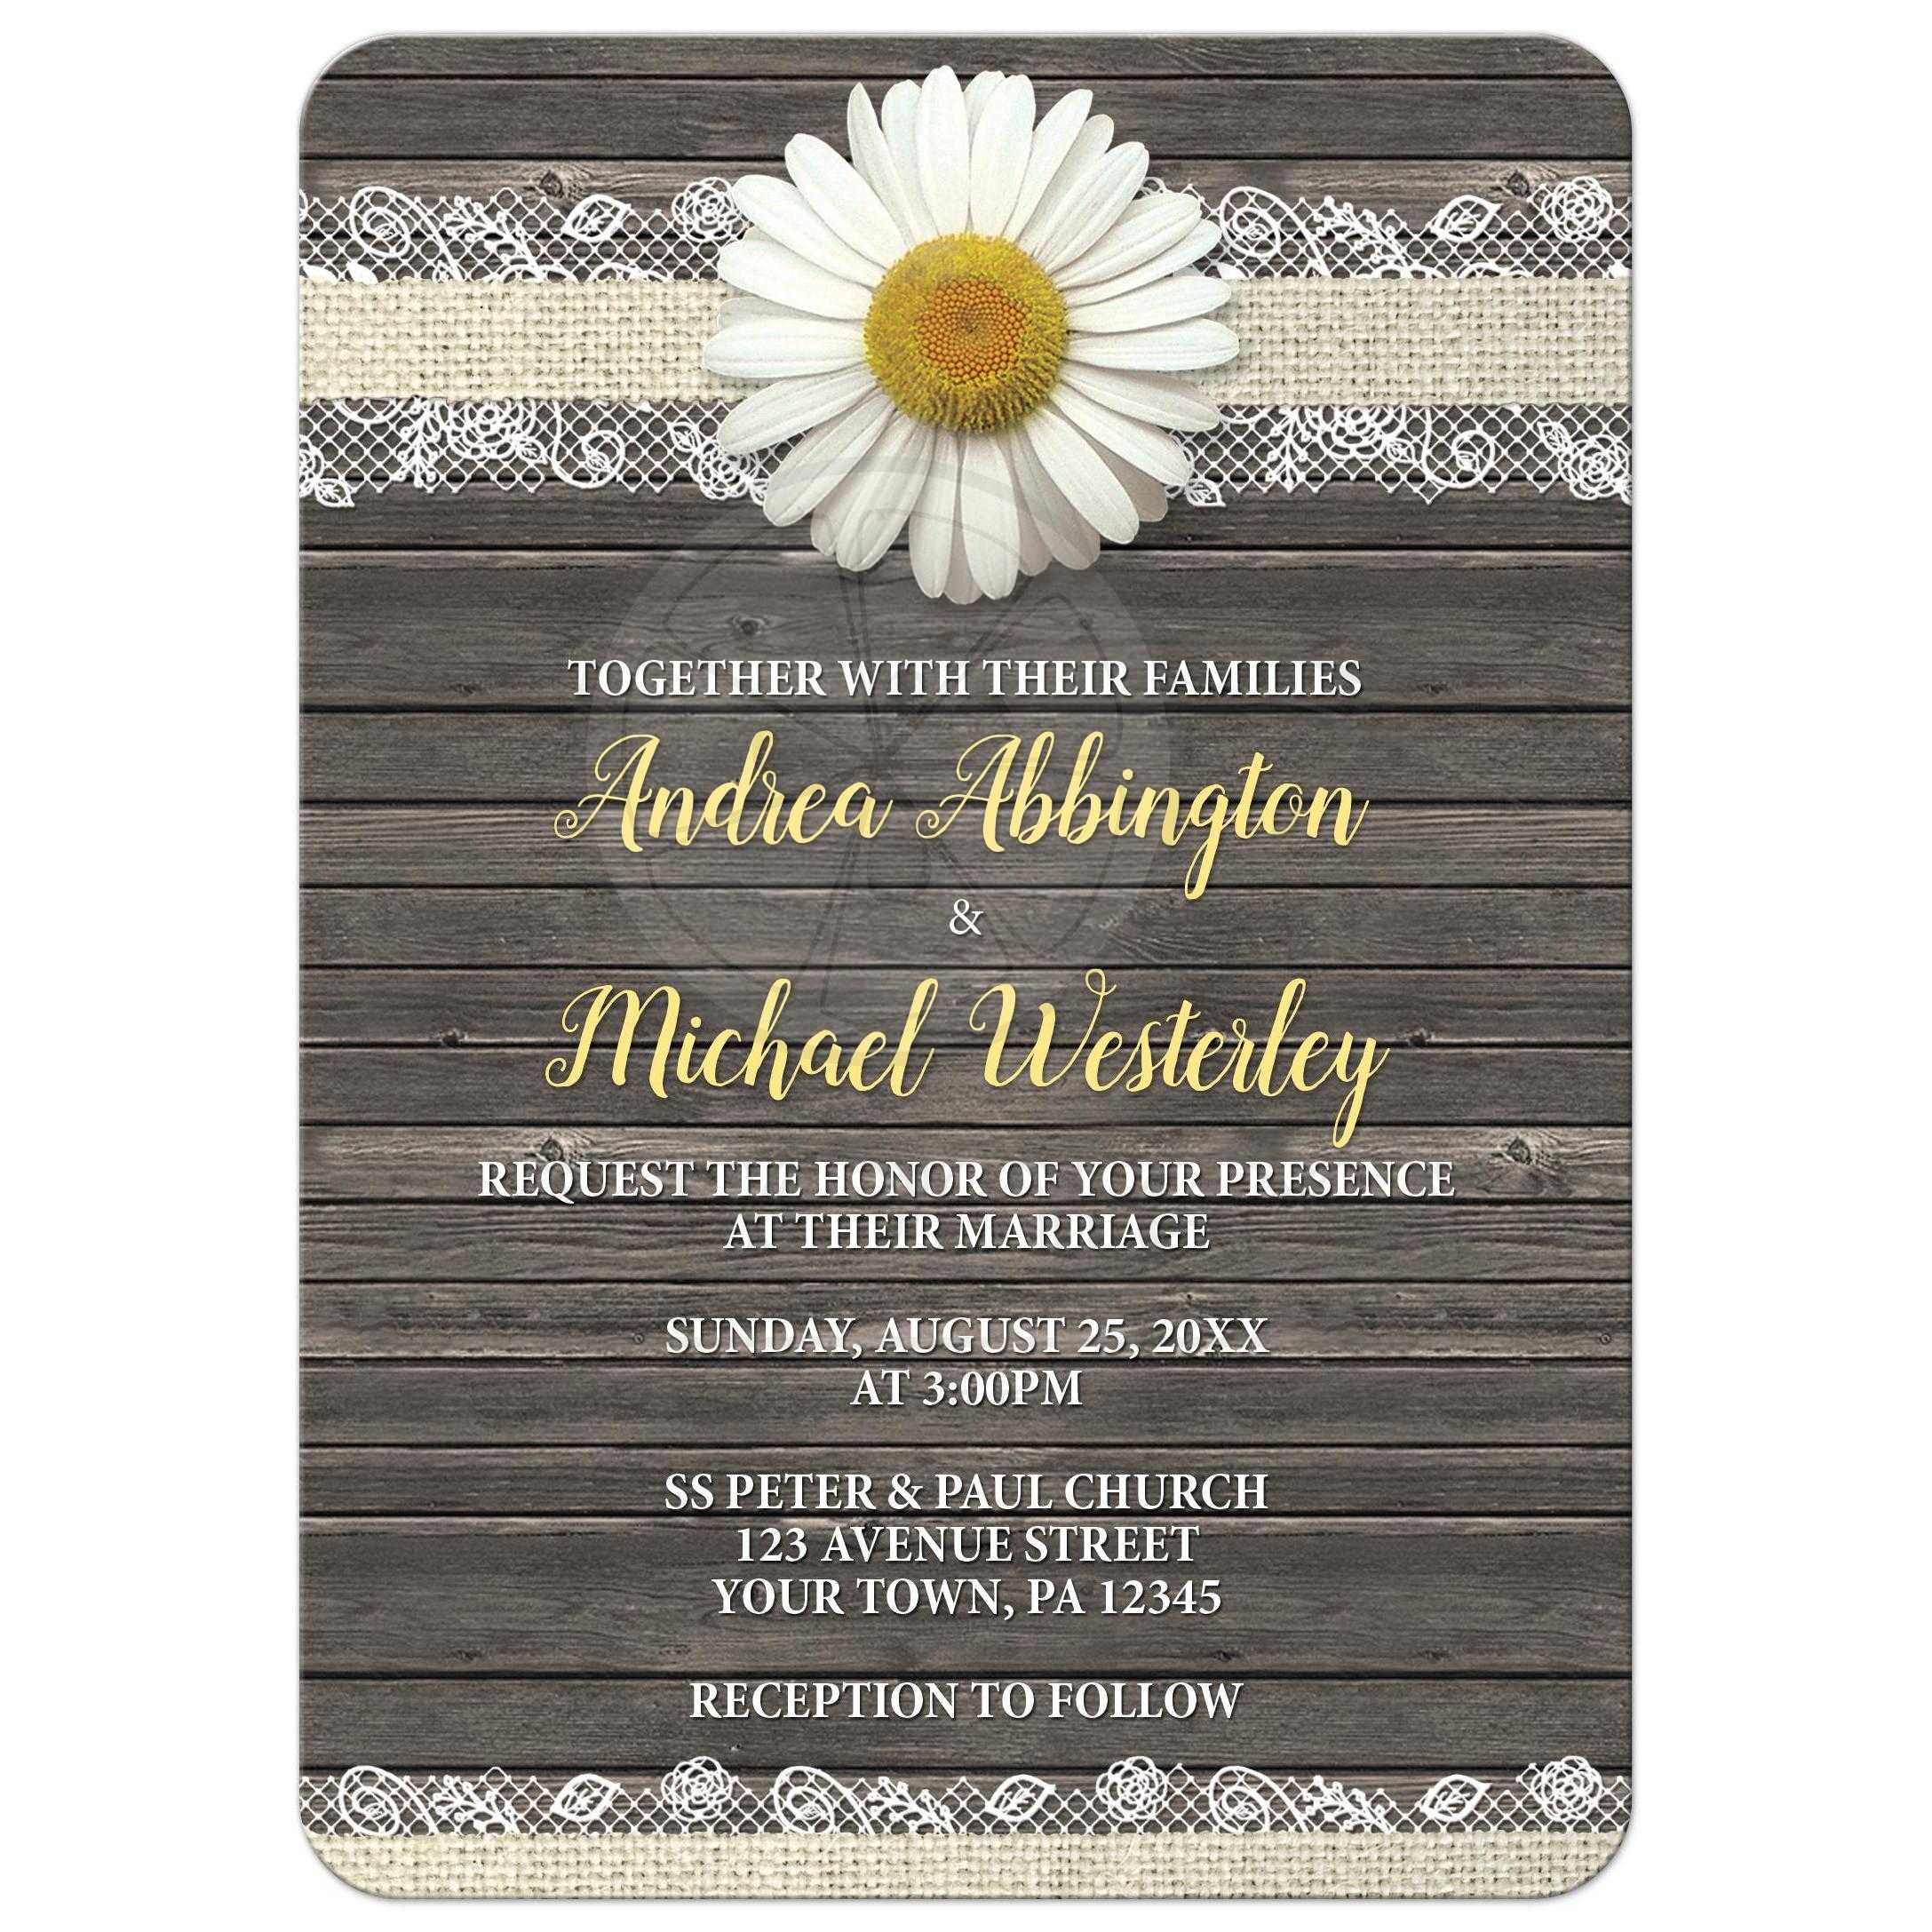 invitations - daisy burlap and lace wood, Wedding invitations